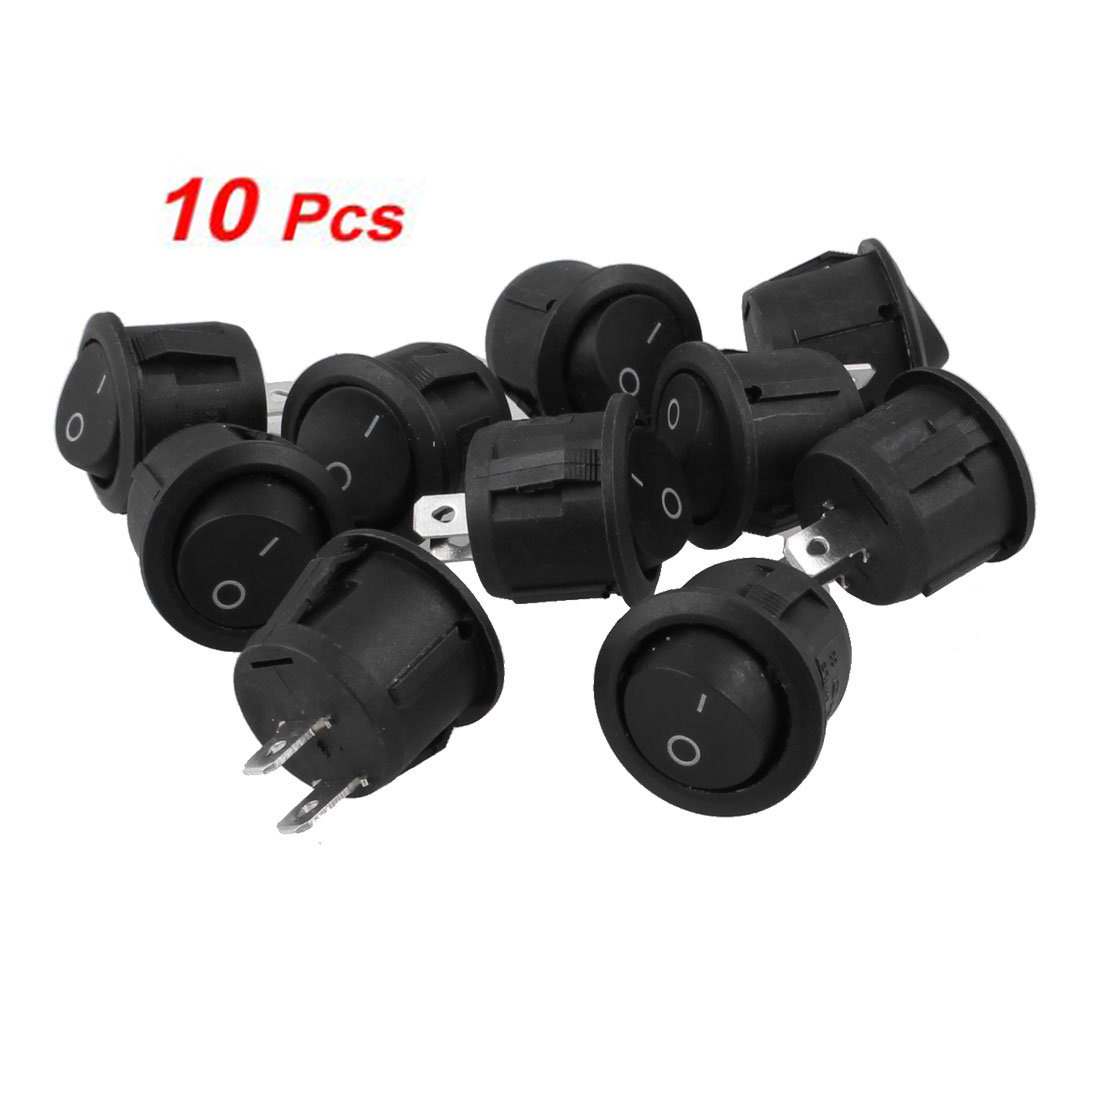 Promotion! 10Pcs AC 6A 10A 250V On Off Snap in SPST Round Boat Rocker Switch Black mylb 10pcsx ac 3a 250v 6a 125v on off i o spst 2 pin snap in round boat rocker switch